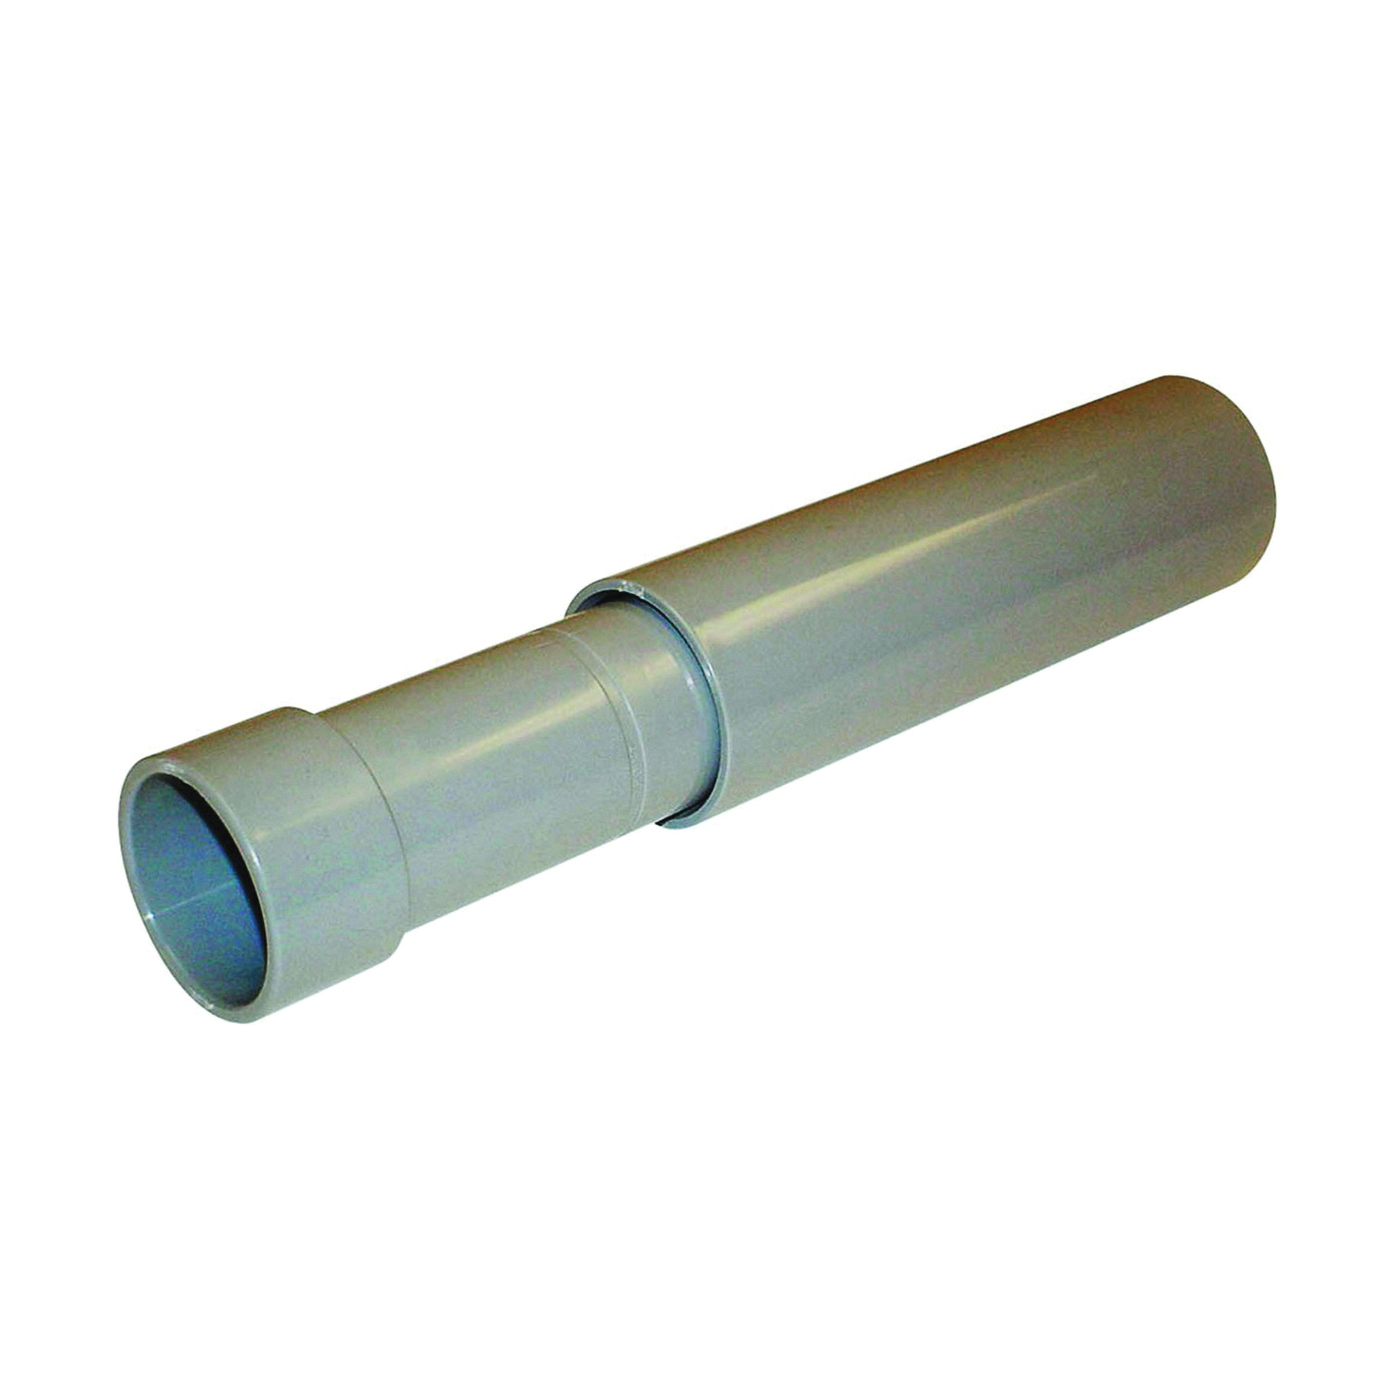 Picture of Carlon E945 Series E945F-CAR Expansion Coupling, 1 in Trade, Female Socket, 6 in L, PVC, Brown